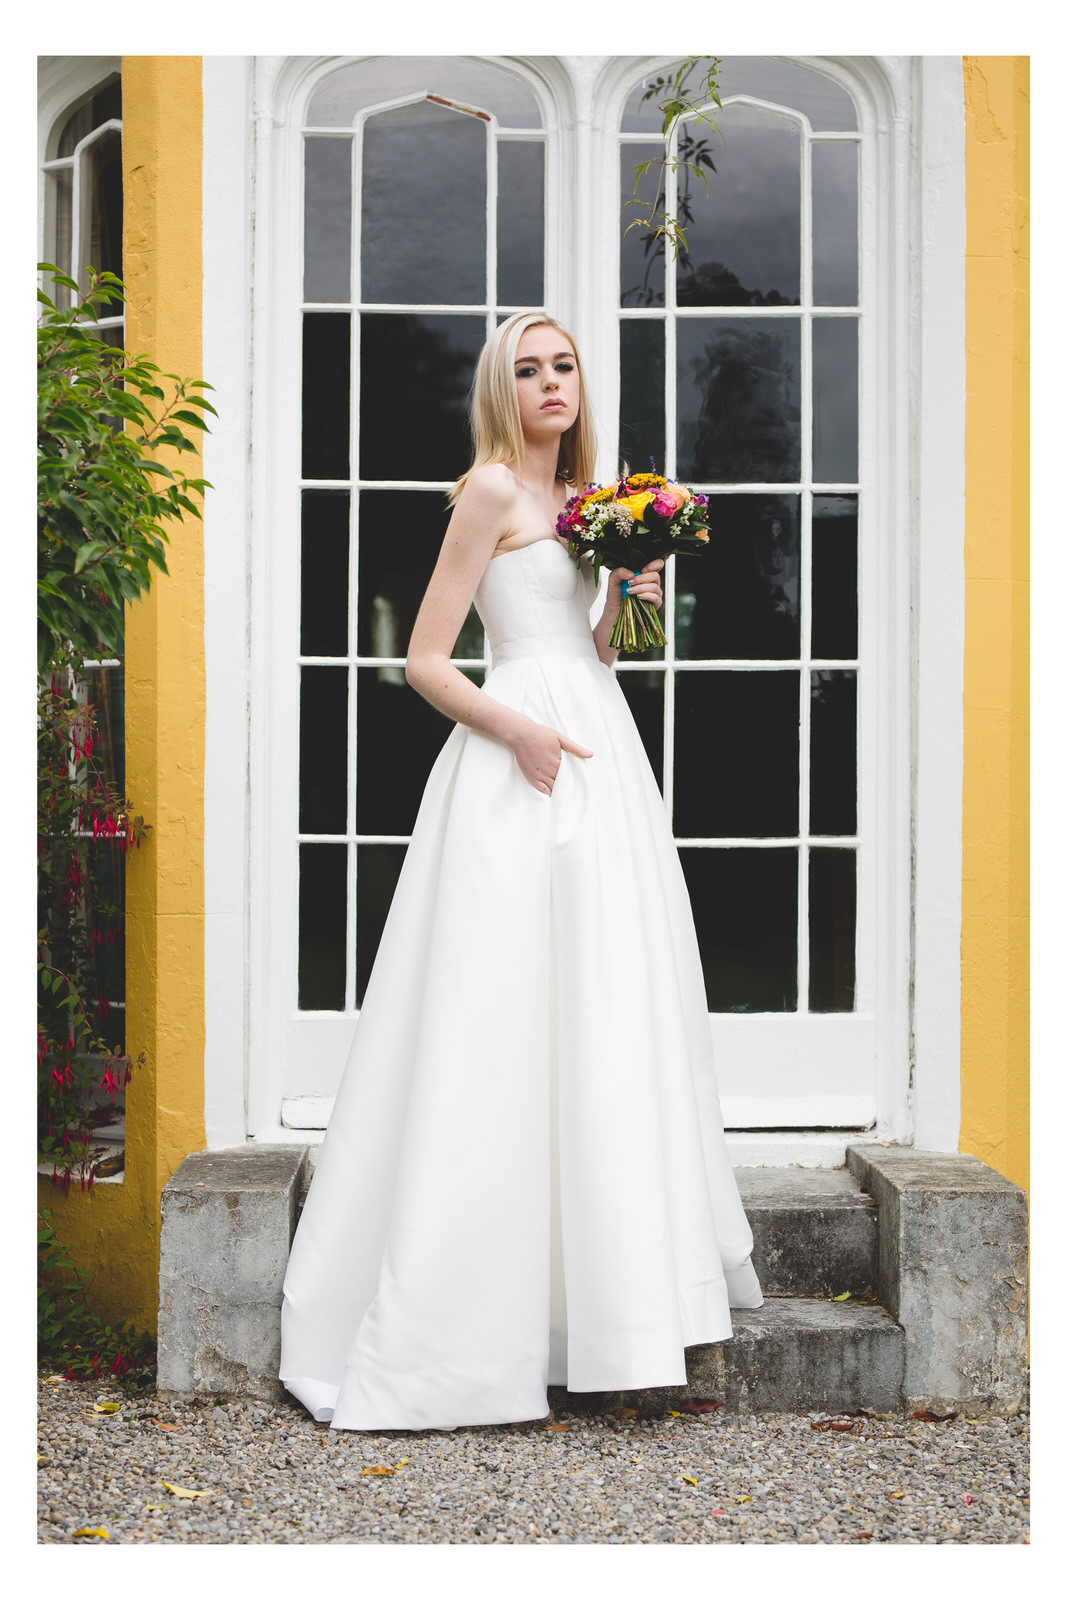 Sleeveless wedding dress with a sweetheart neckline